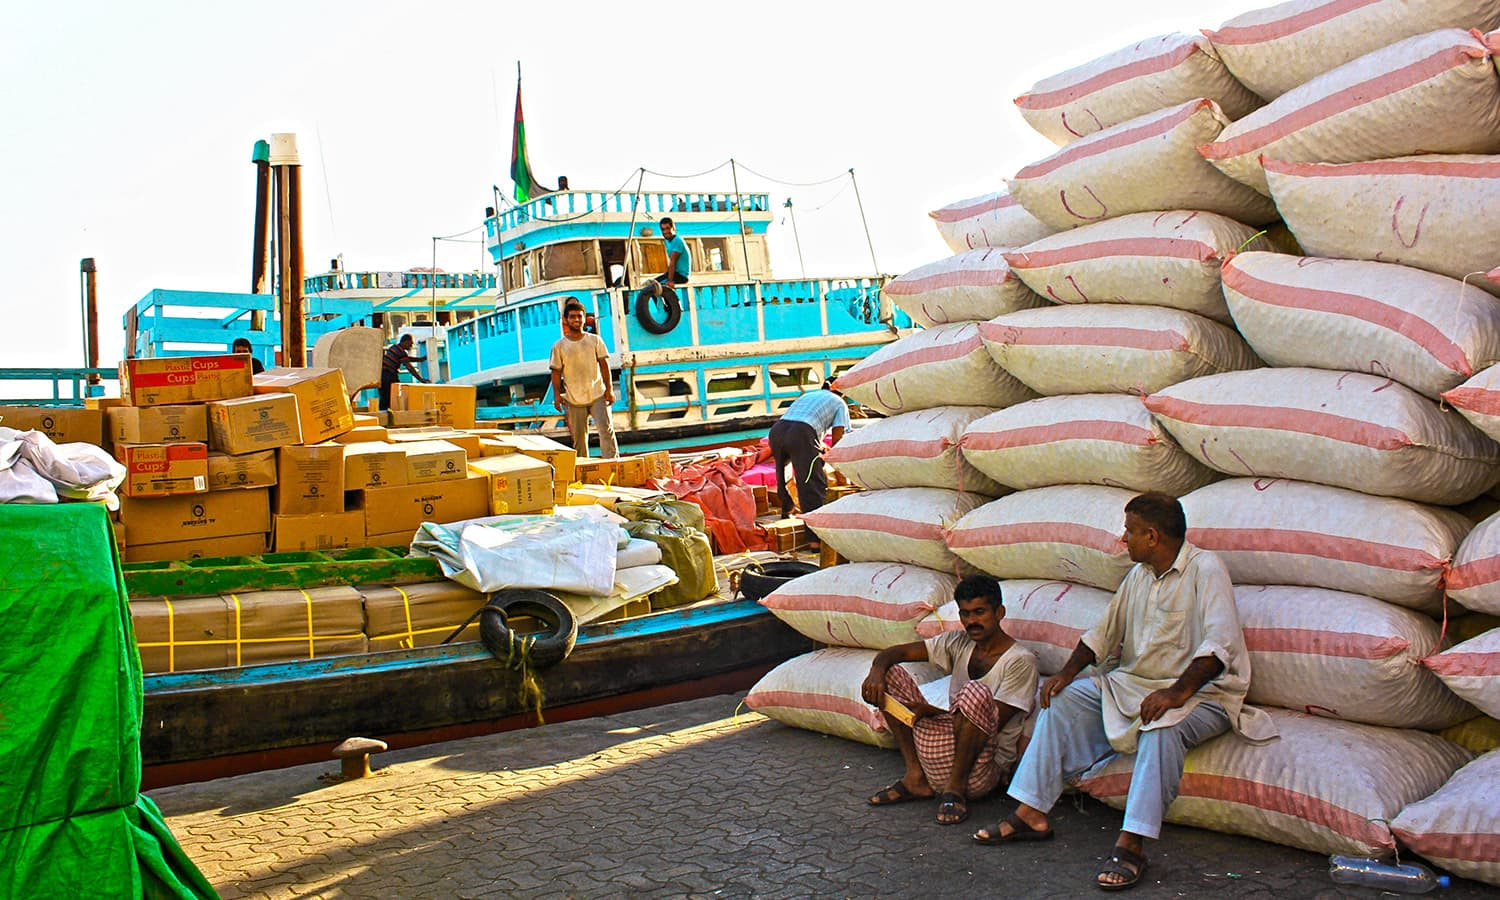 The old boats lined along the creek are always bustling with activity as workers unload products that are exported from around the world.